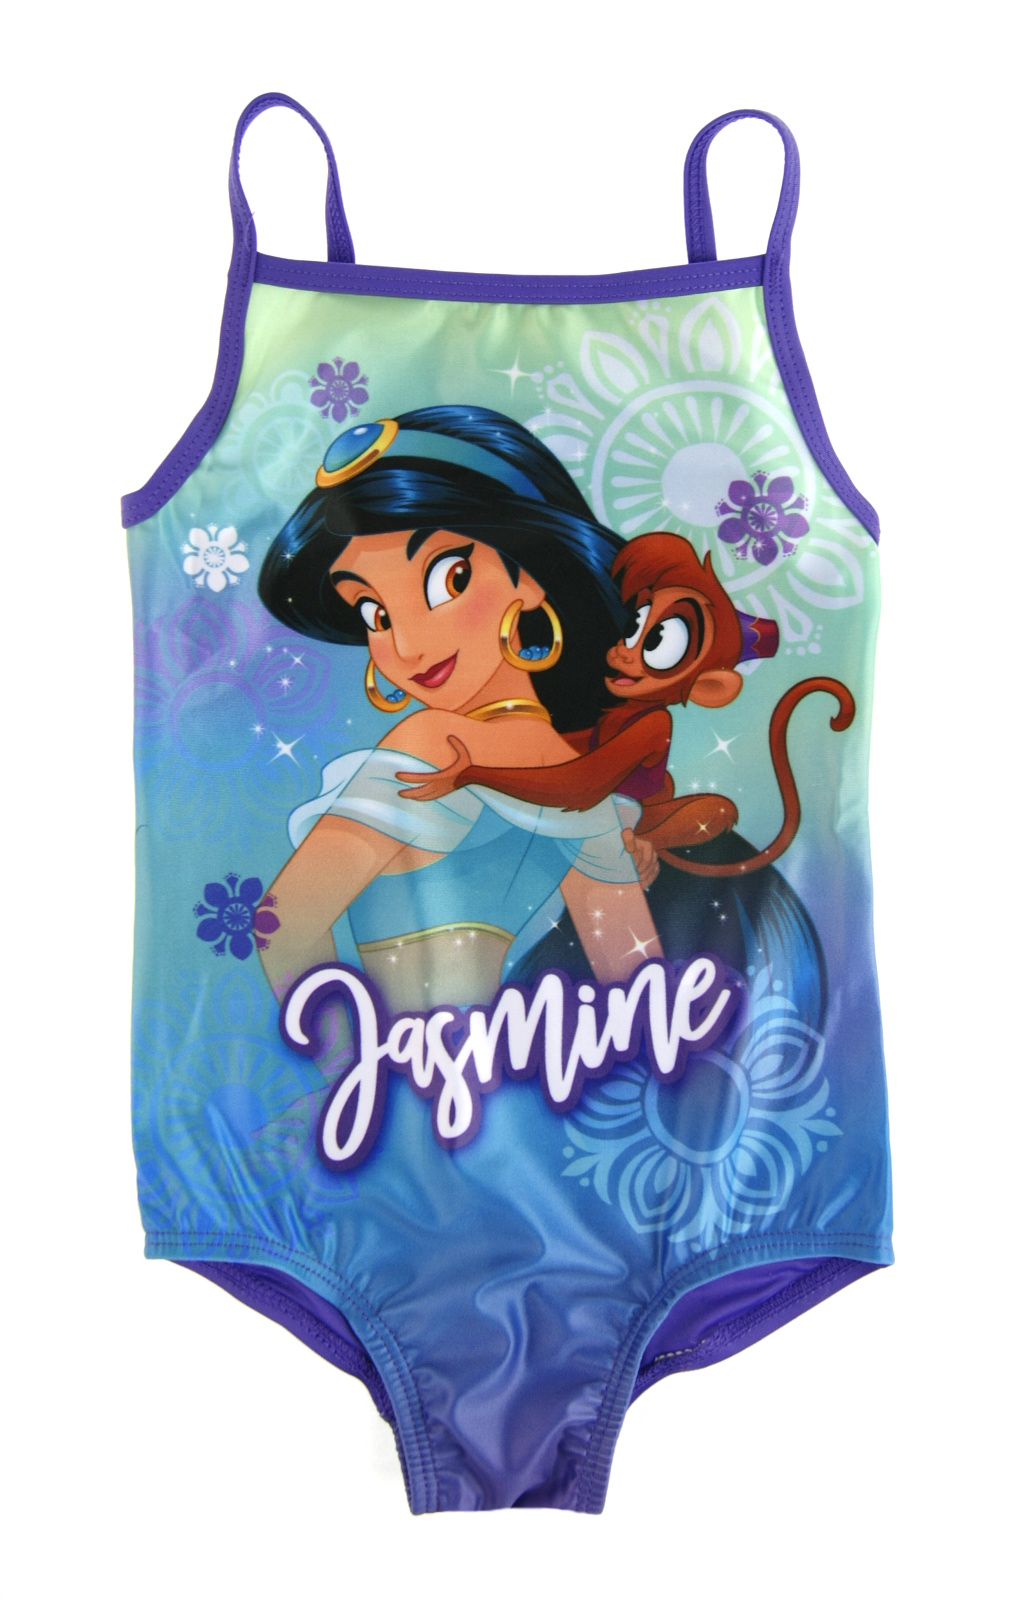 30c5e9664 Girls Disney Character Swimming Costume Swim Suit Beach Summer ...